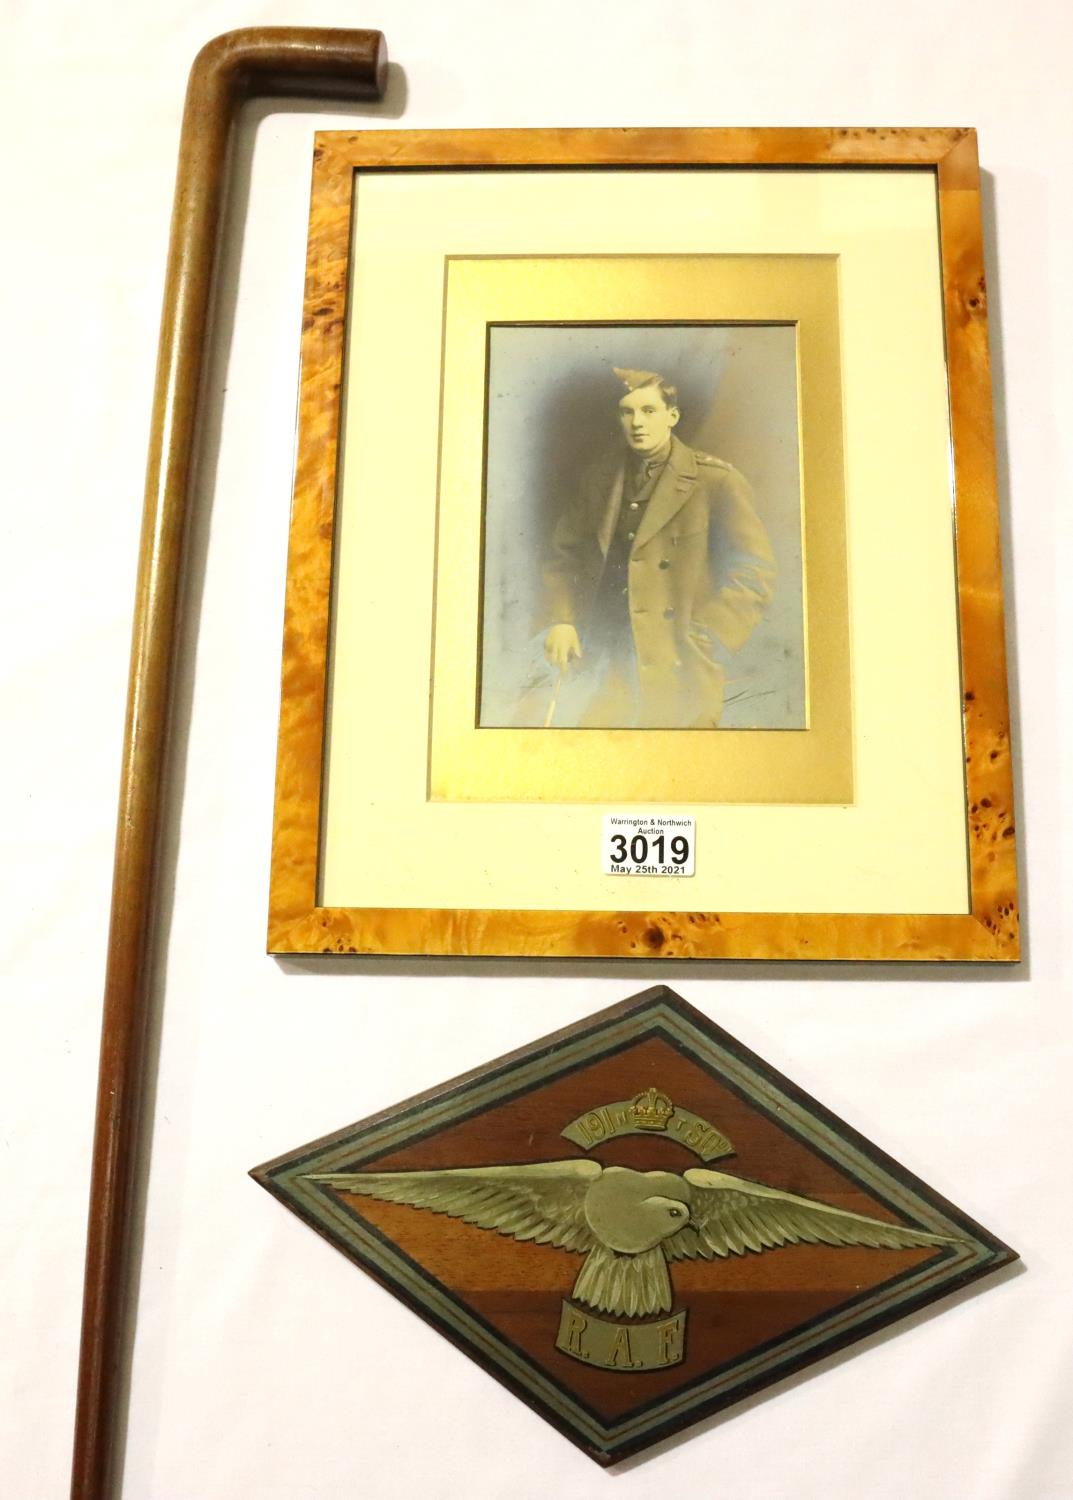 Lt. Griffiths, 191 Squadron RAF, a painted mess plaque, a later framed portrait and walking cane